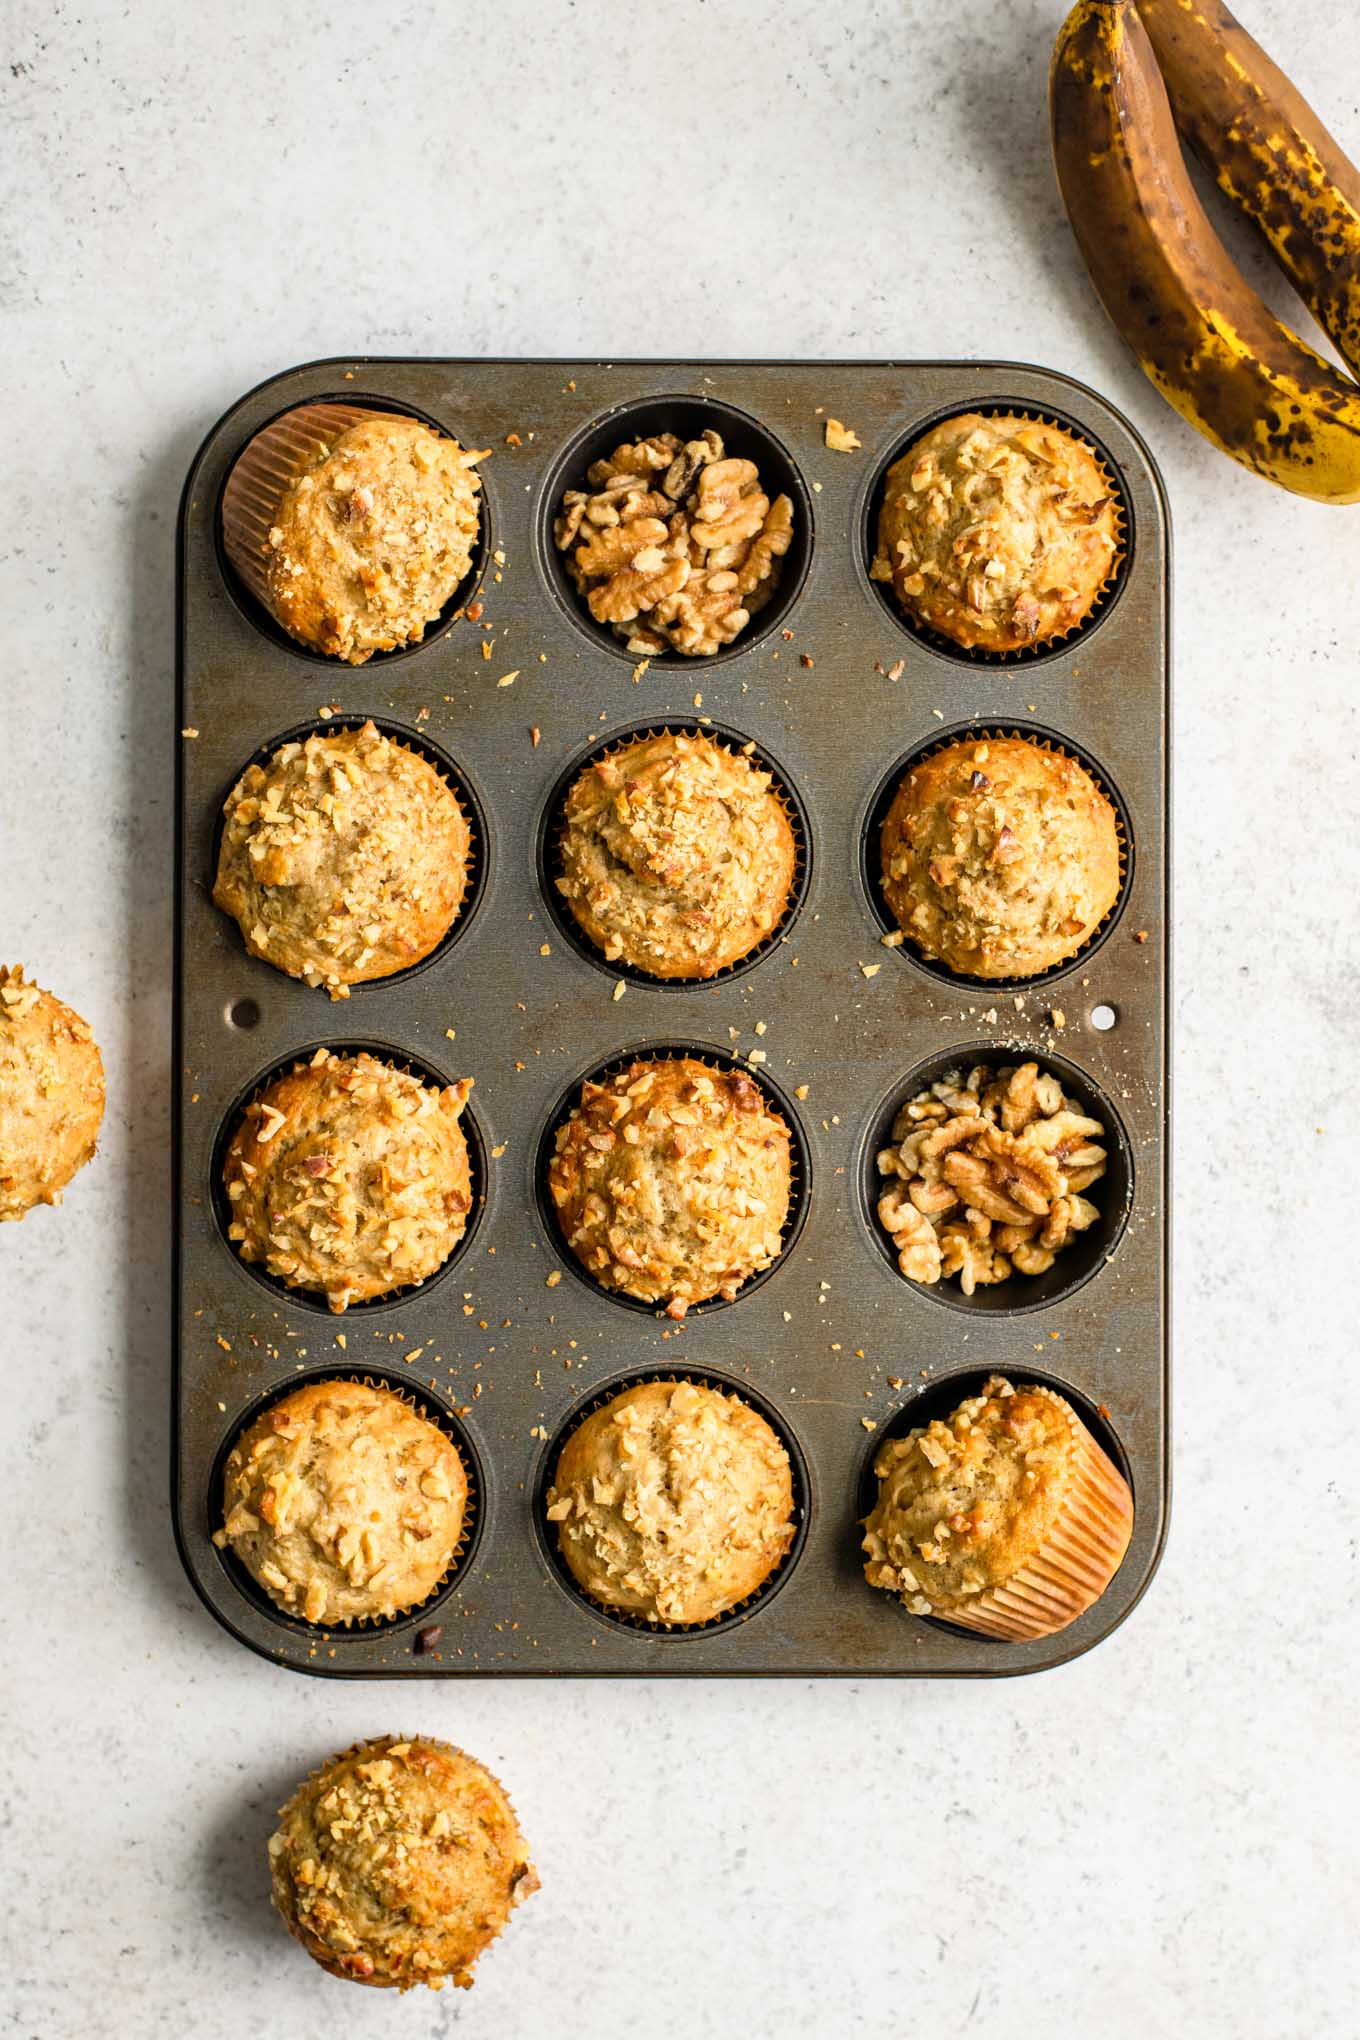 baked banana nut muffins in a muffin pan with two of the muffin wells filled with walnuts